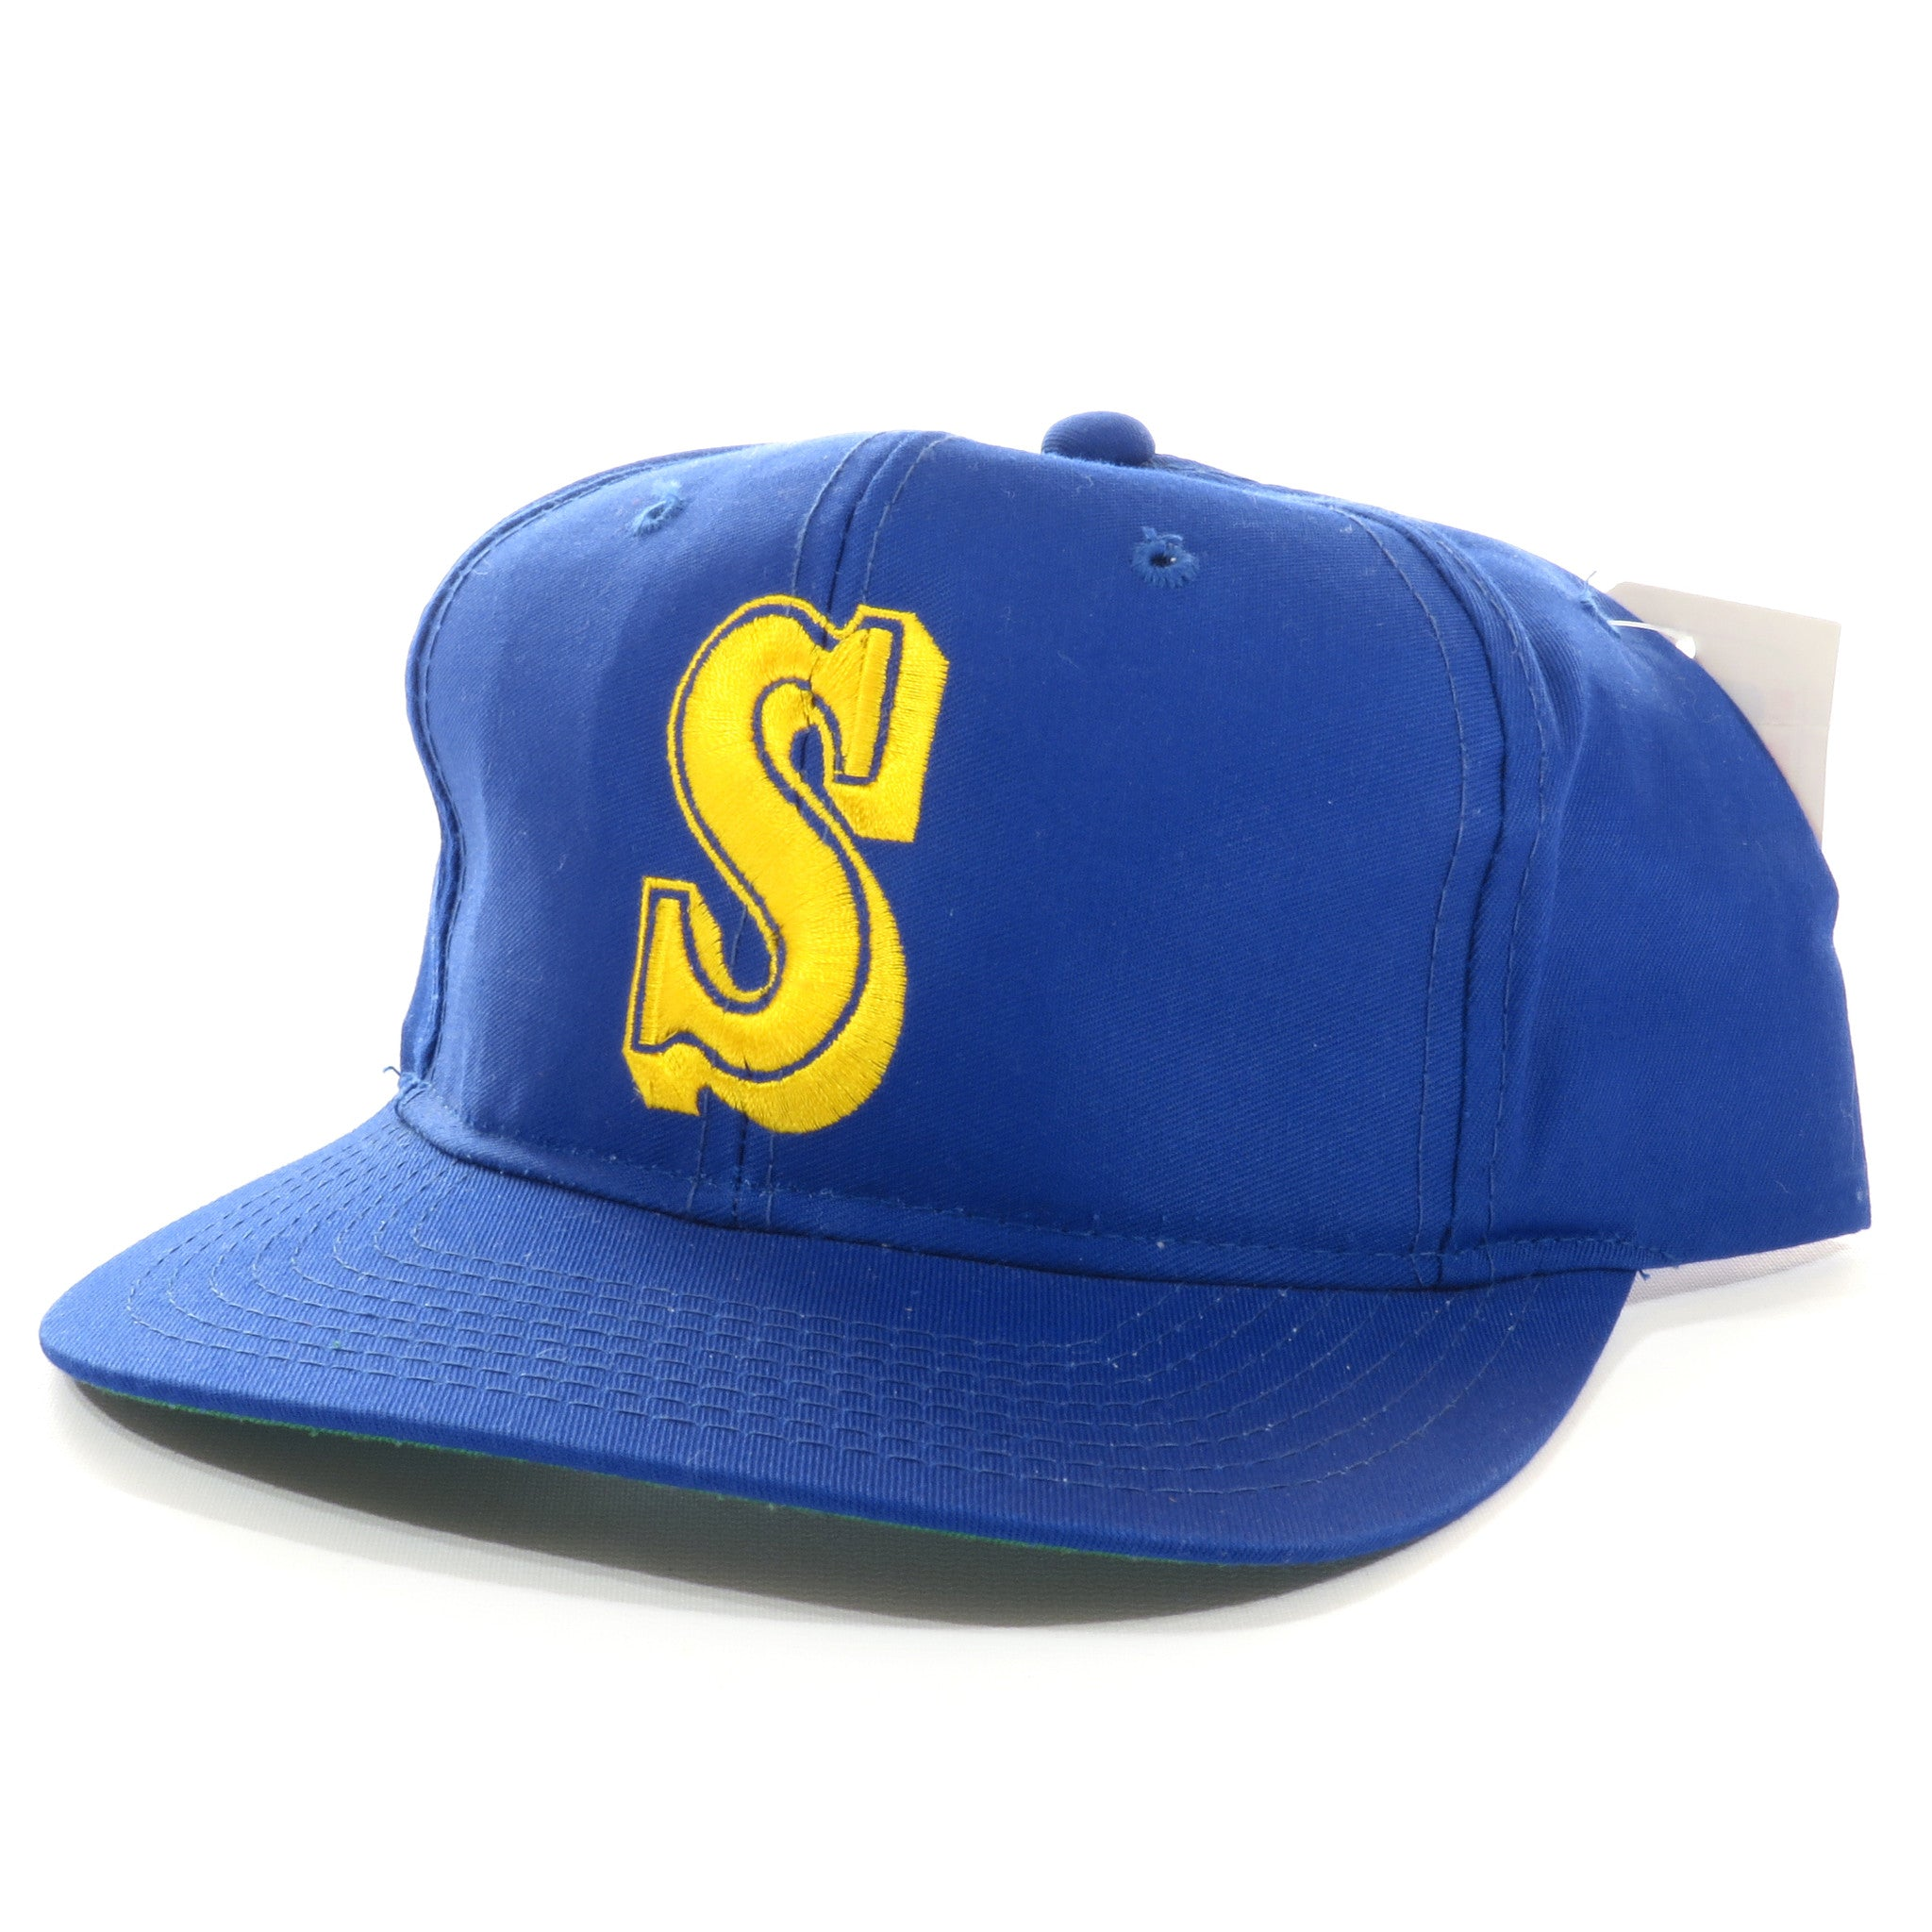 Seattle Mariners Snapback Hat